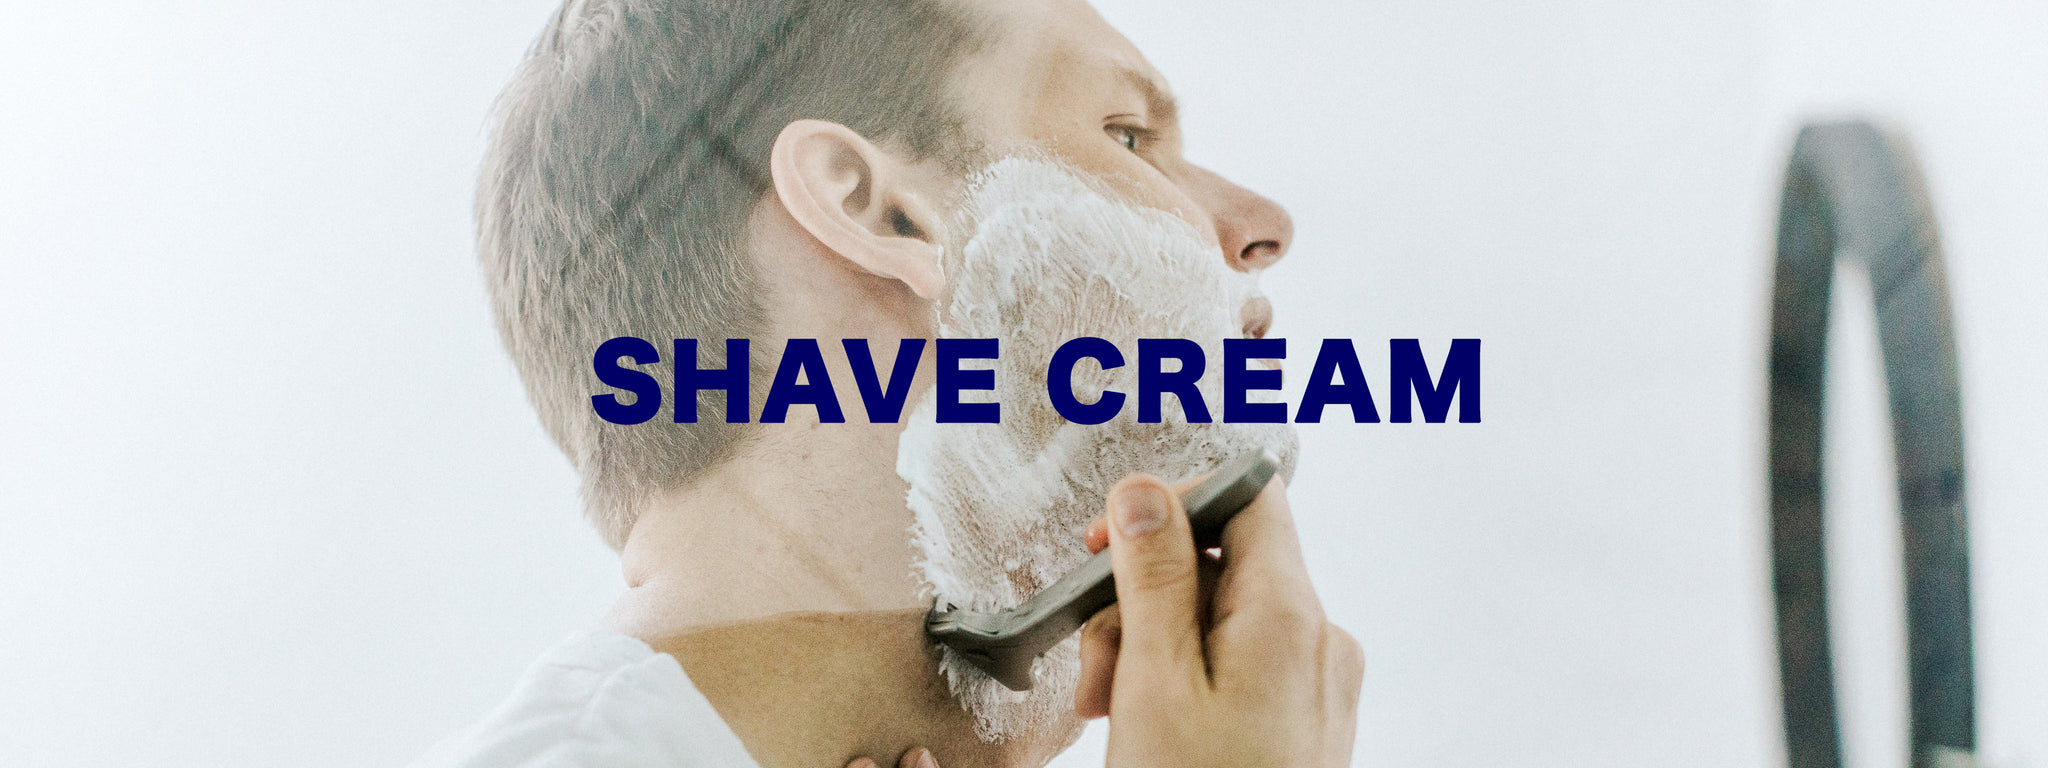 SHAVE CREAM AT CONSIGLIERE